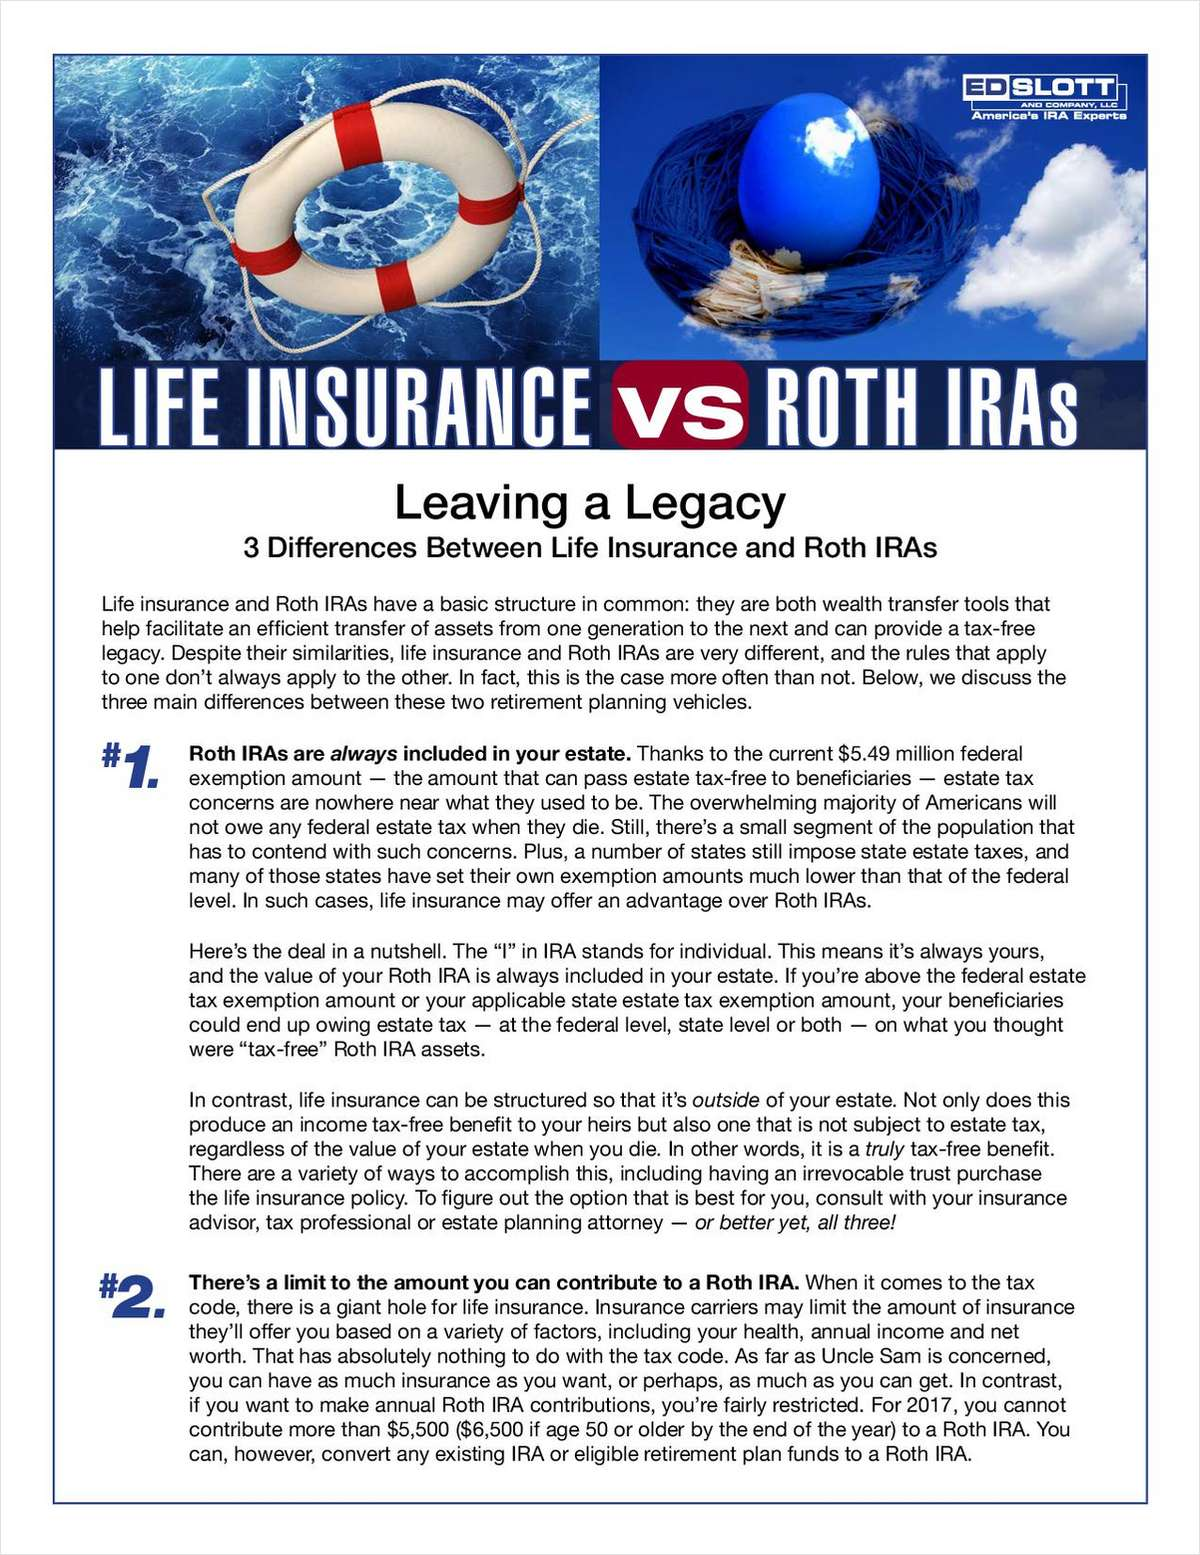 Life Insurance vs Roth IRAs - Know the Difference